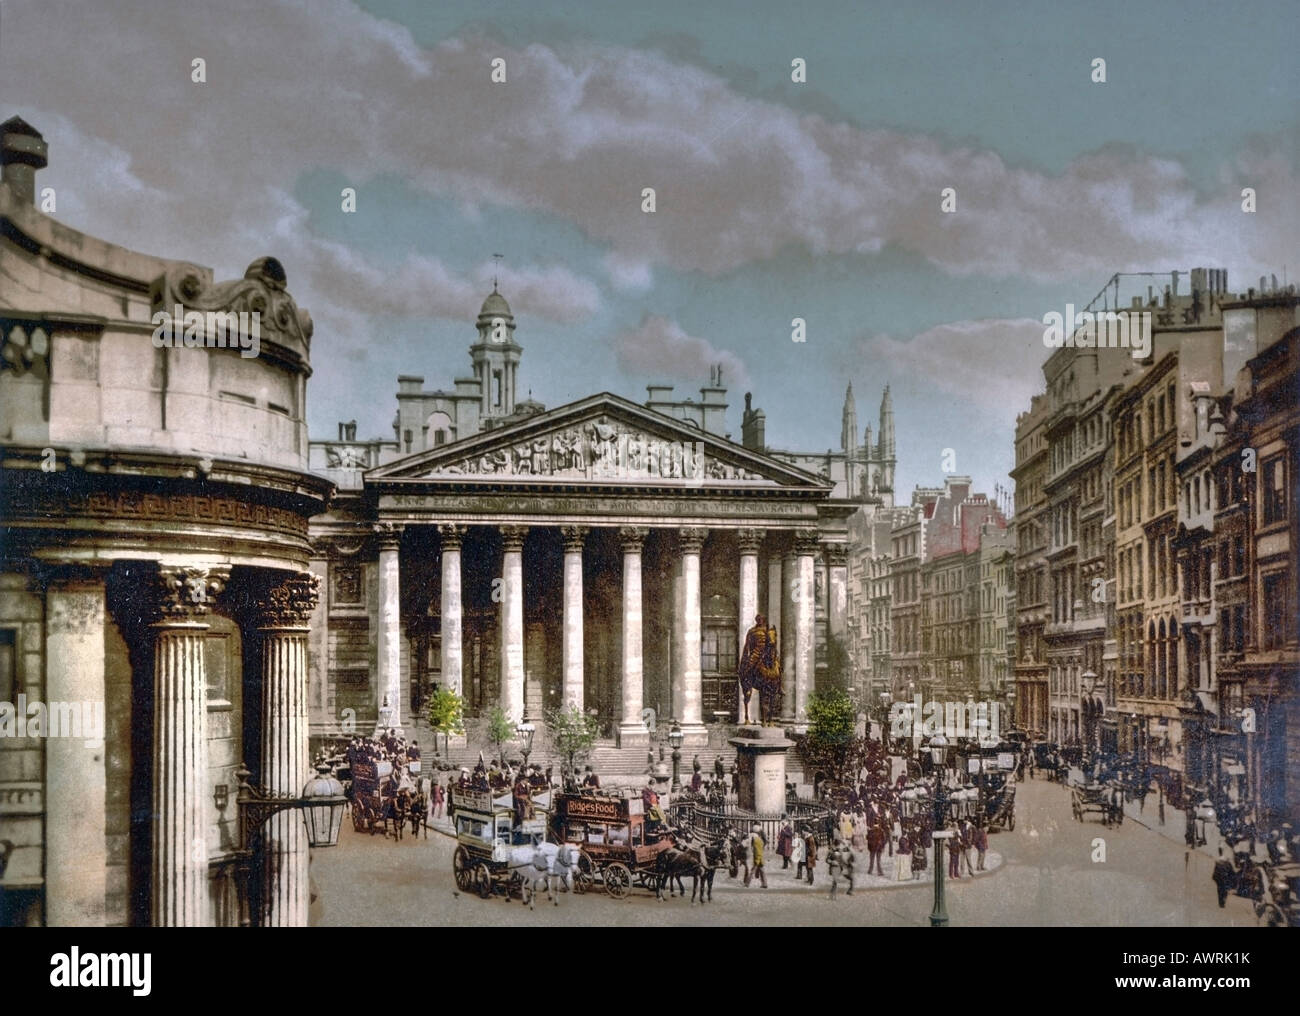 The Royal Exchange in the City of London - Stock Image